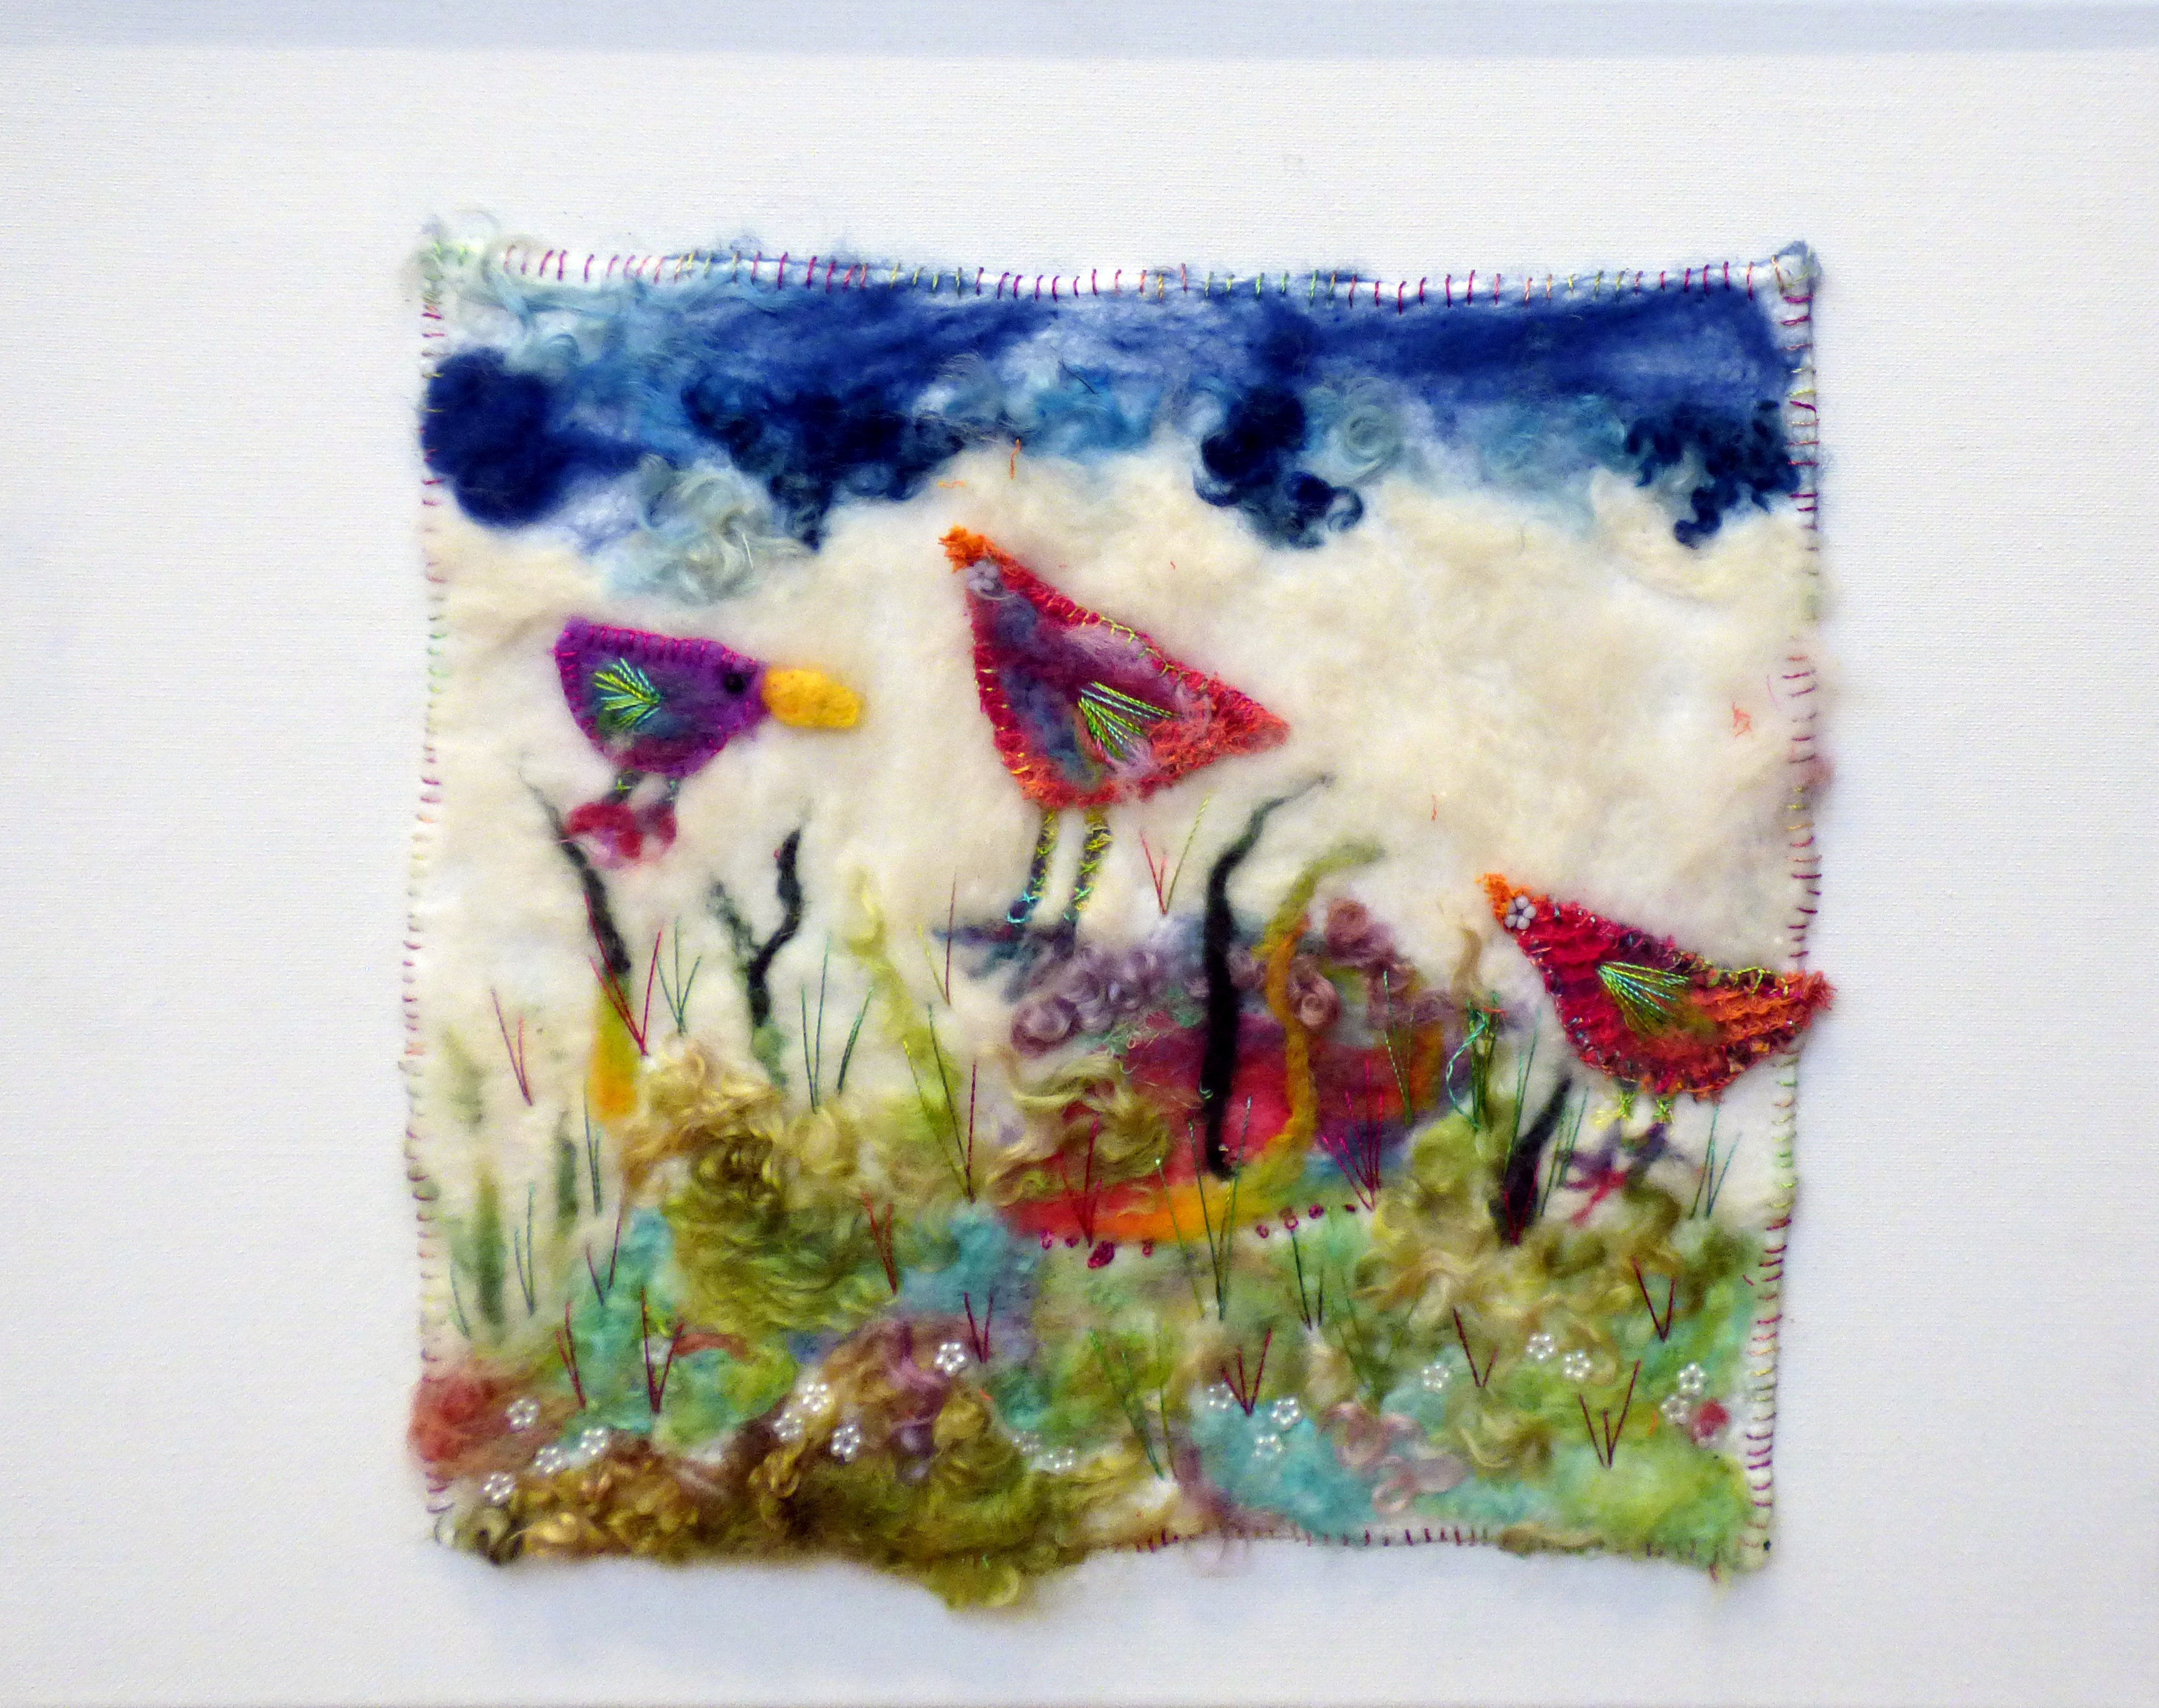 FLY AWAY PETER, FLY AWAY PAUL by Judith Fabby, dry felting, machine and hand stitching